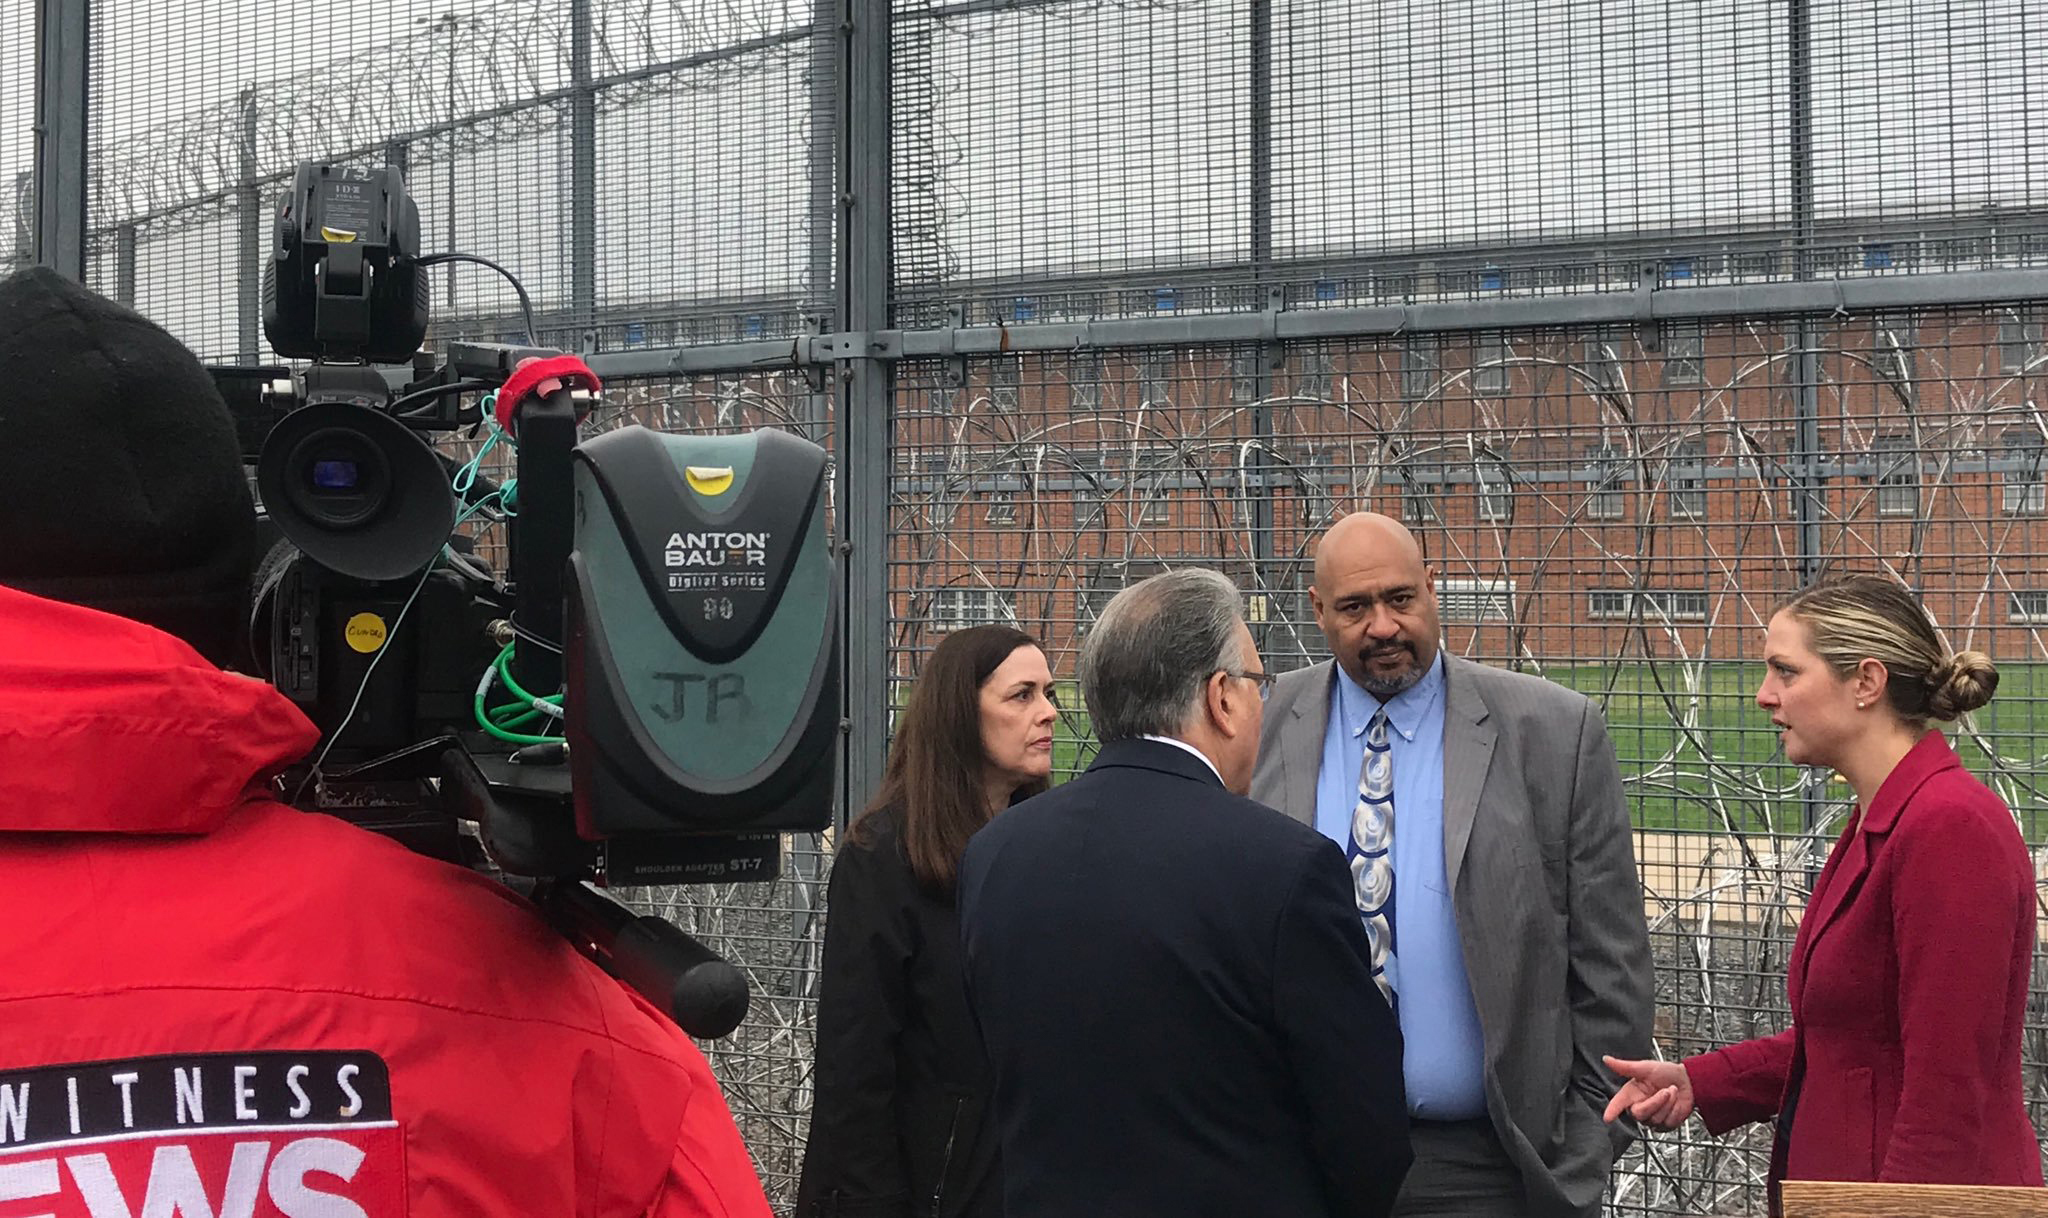 Thinking Beyond the Prison Cell | Arnold Ventures